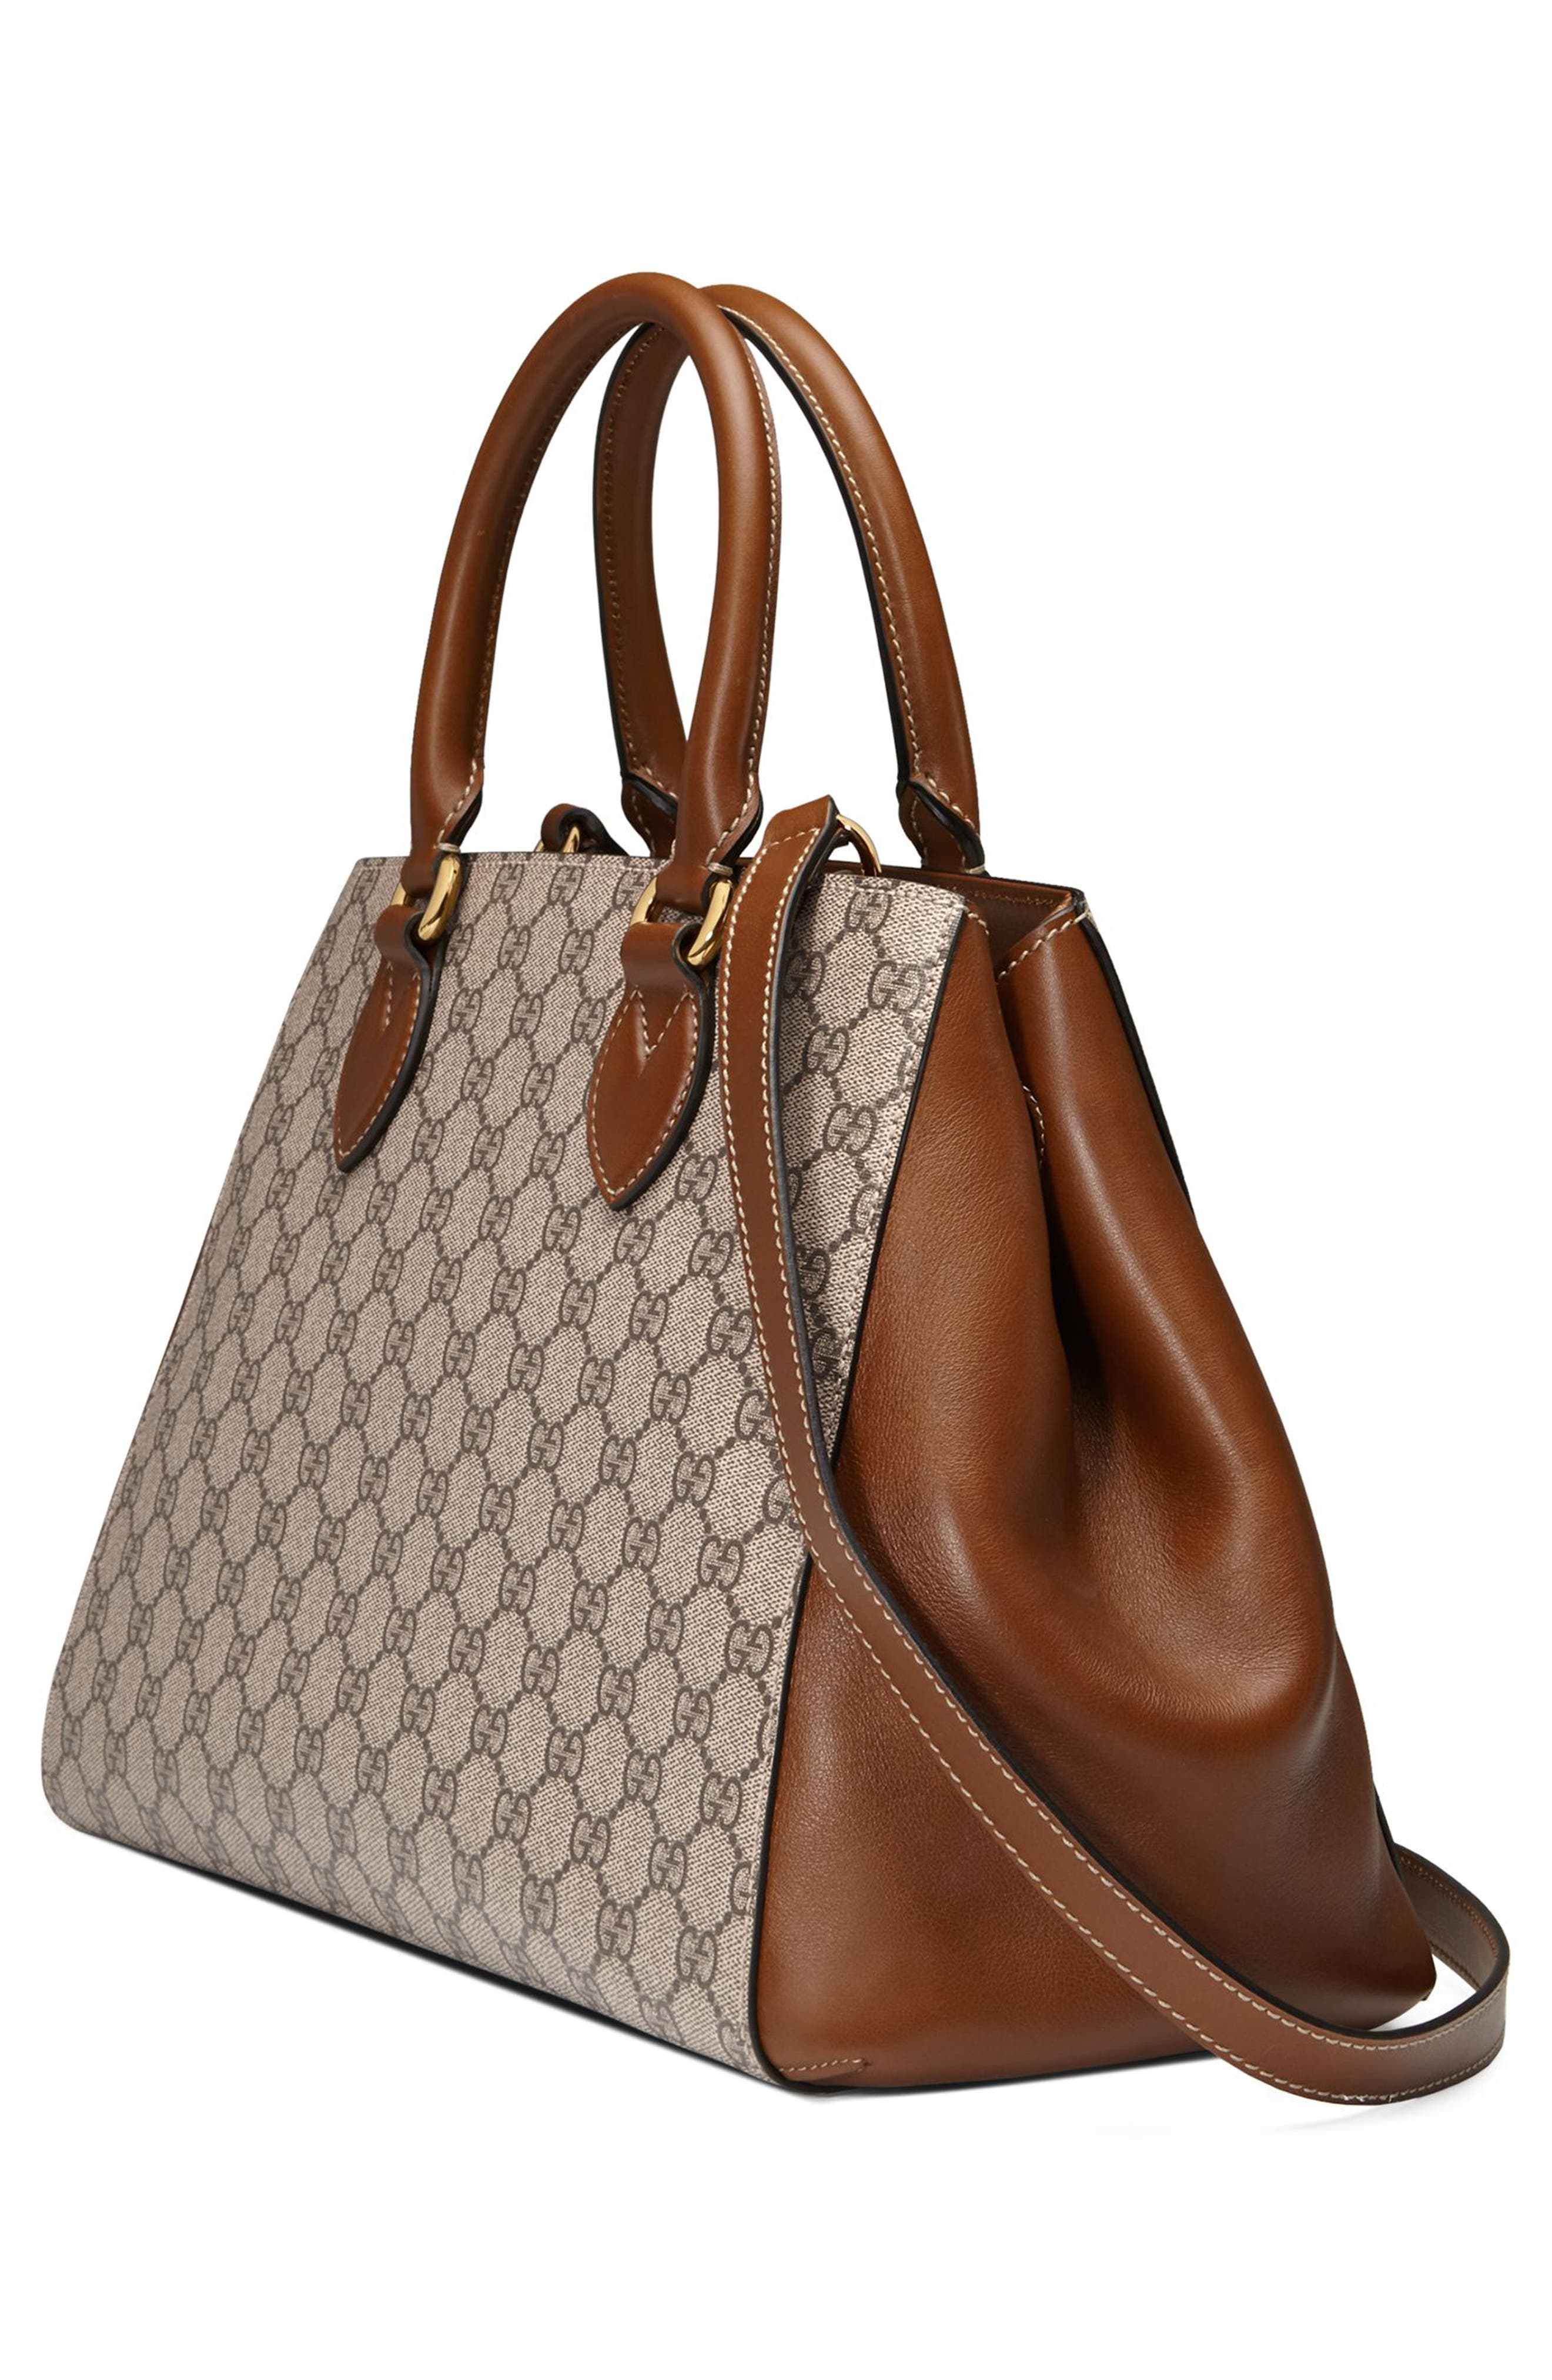 Large Top Handle GG Supreme Canvas & Leather Bag,                             Alternate thumbnail 4, color,                             283